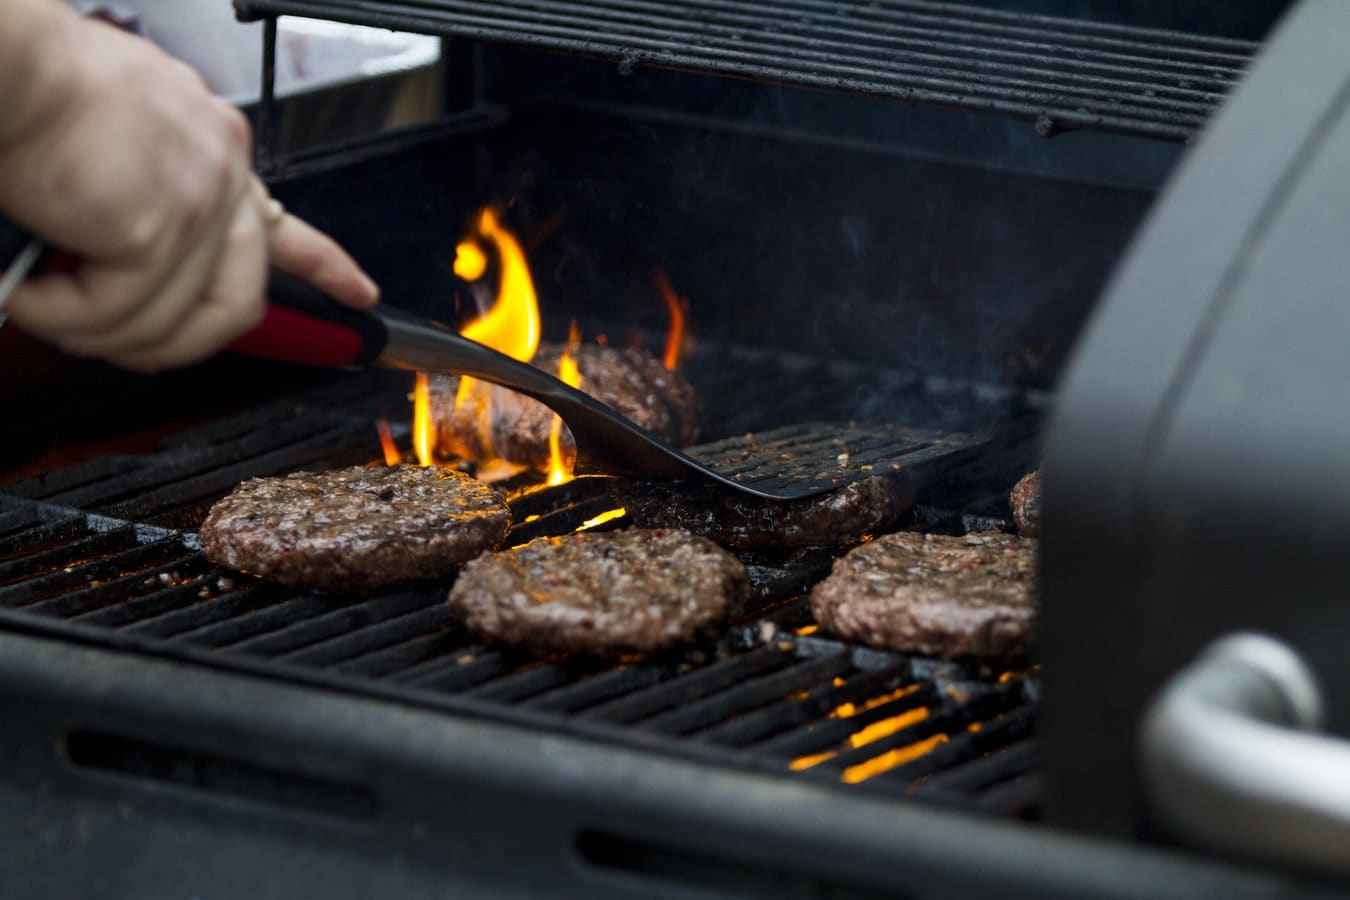 A man grilling burgers on a grille outside